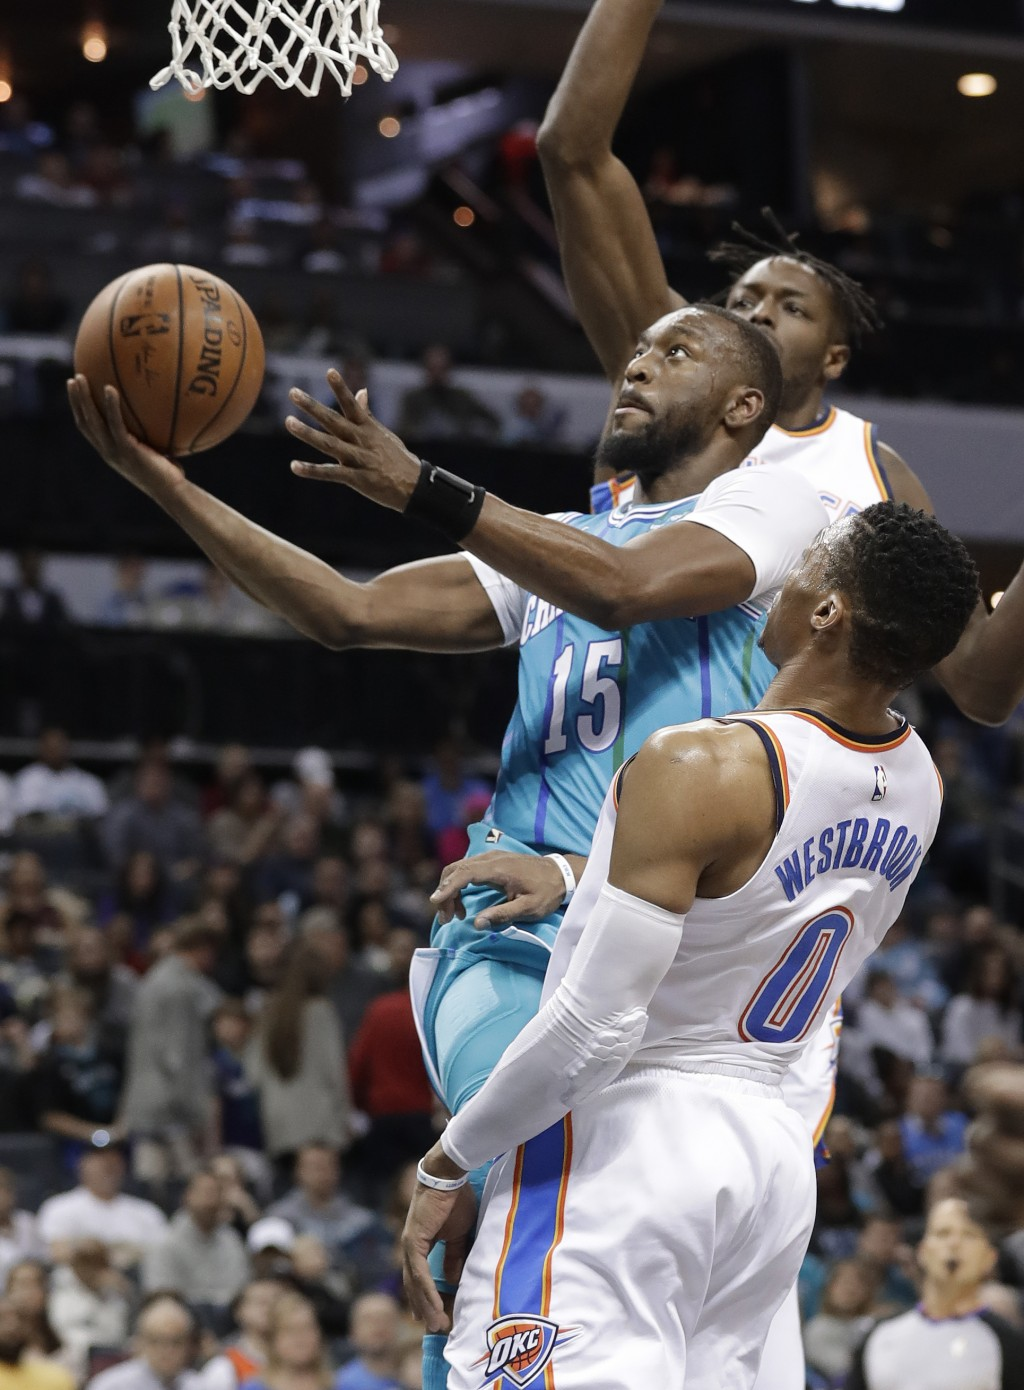 Charlotte Hornets' Kemba Walker (15) drives past Oklahoma City Thunder's Russell Westbrook (0) during the first half of an NBA basketball game in Char